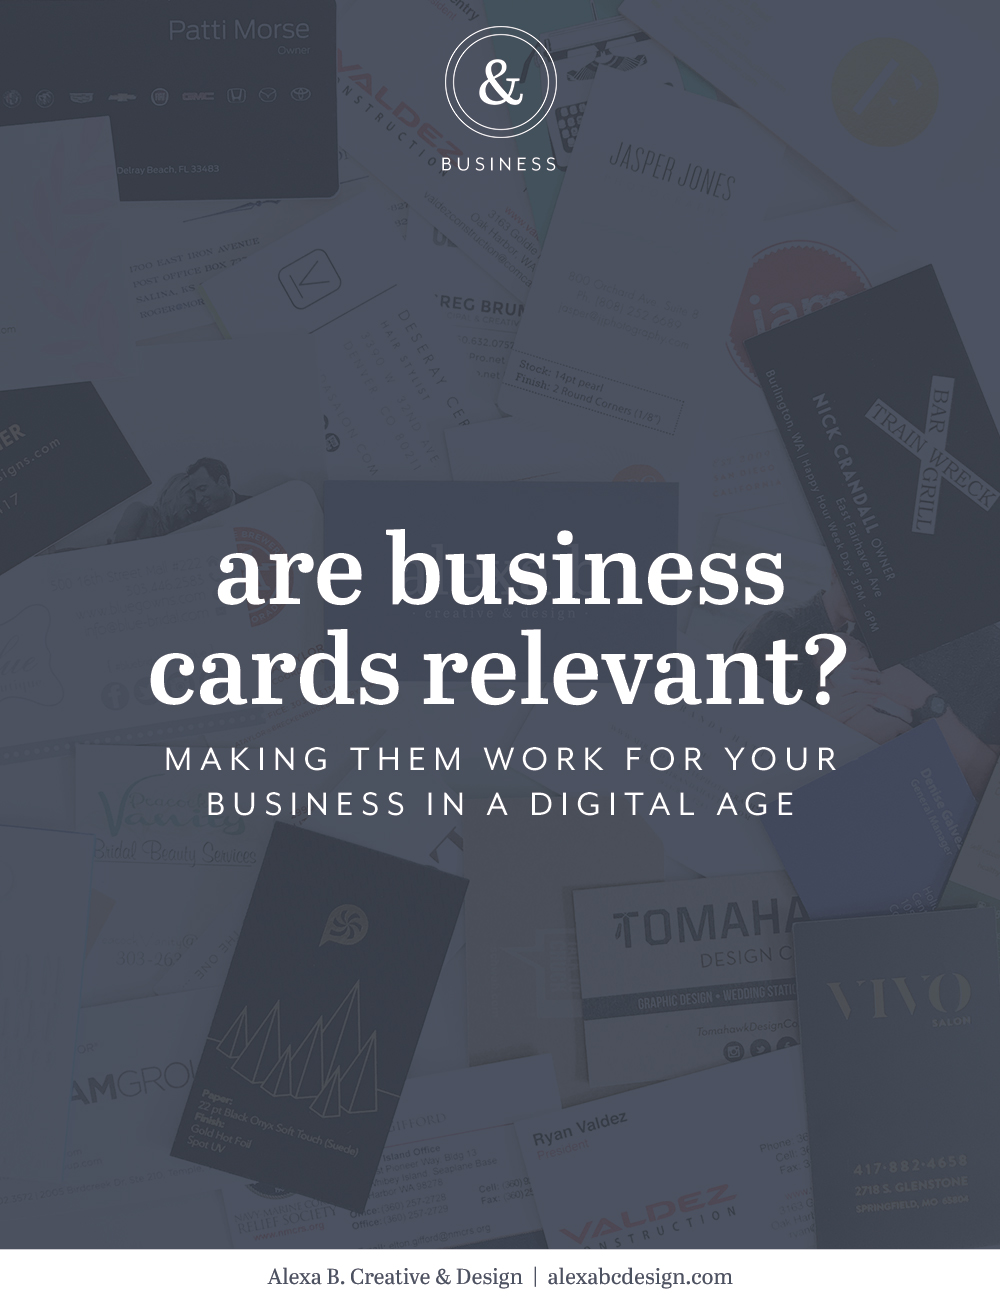 Are business cards relevant + how to make them work for your business in a digital age | Alexa B. Creative & Design